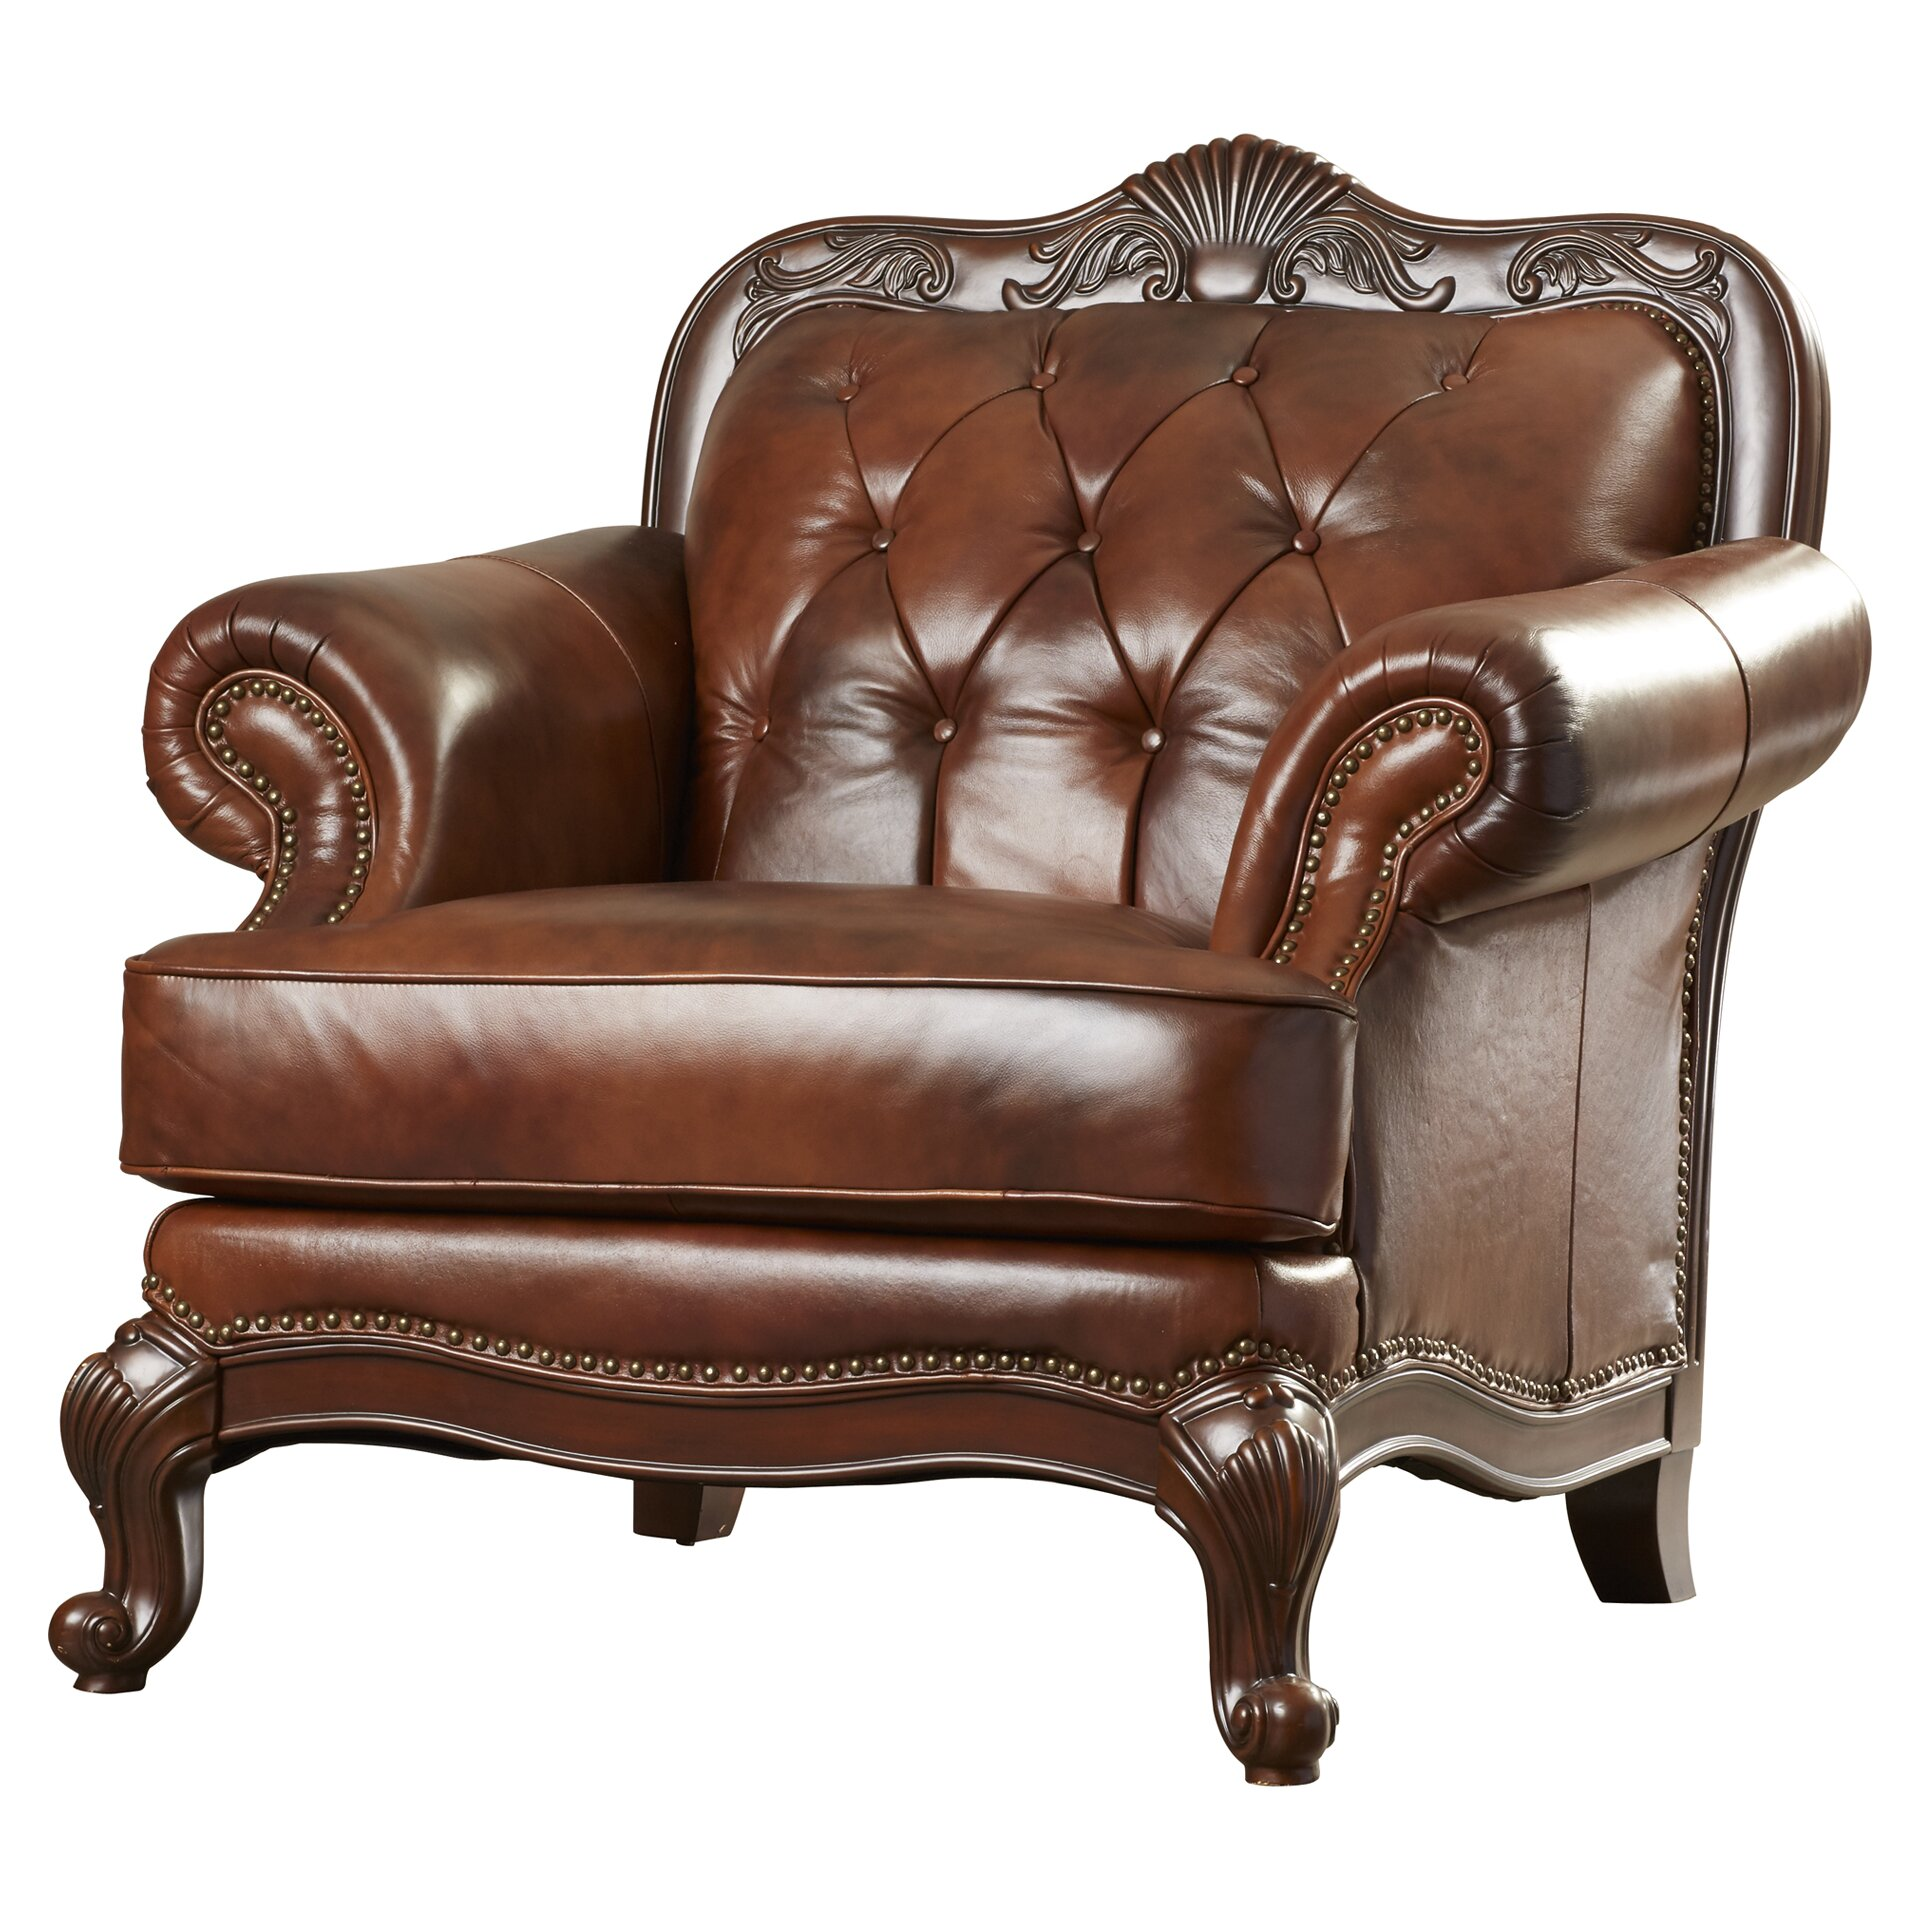 Darby Home Co Smith Leather Club Chair Amp Reviews Wayfair